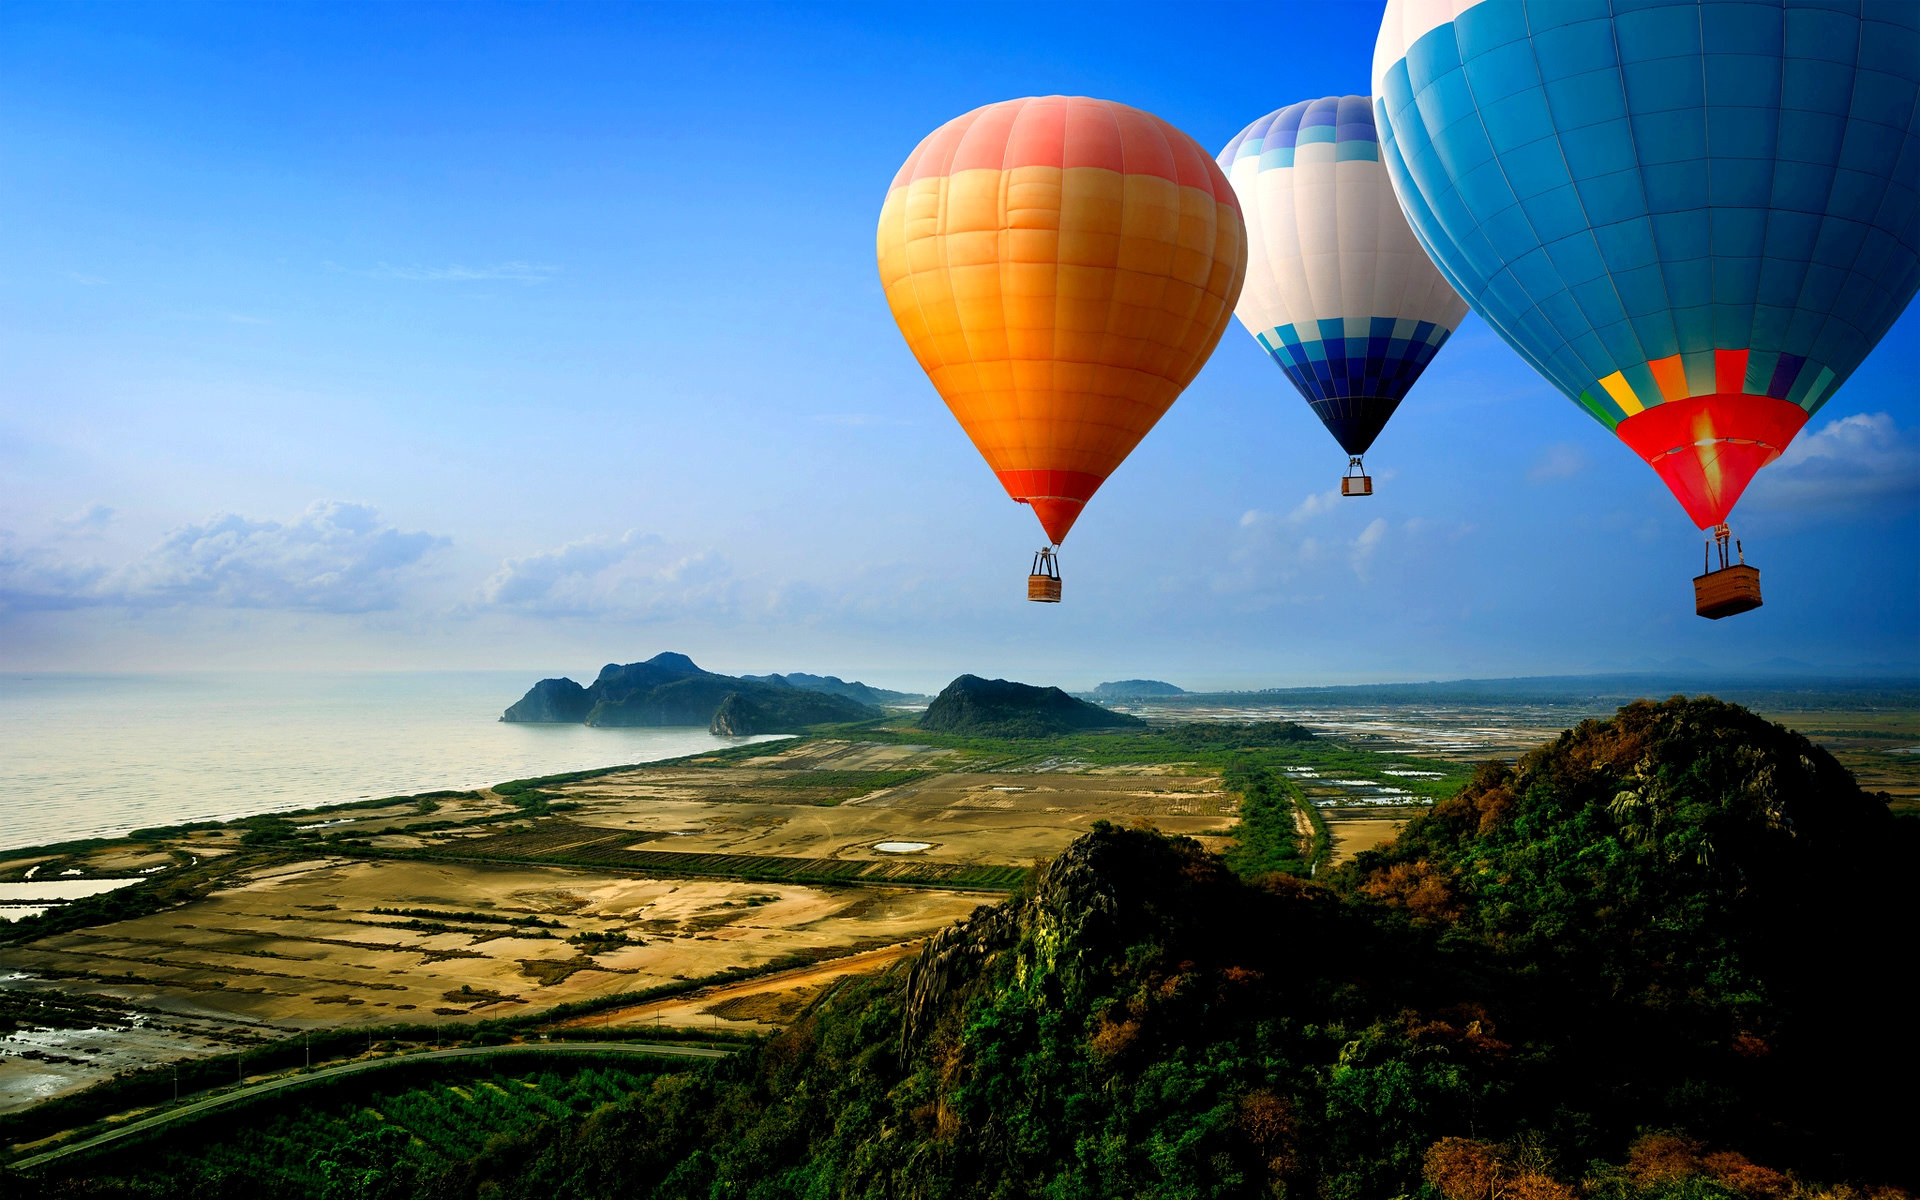 Hd Hot Air Balloon Wallpaper Wallpapersafari